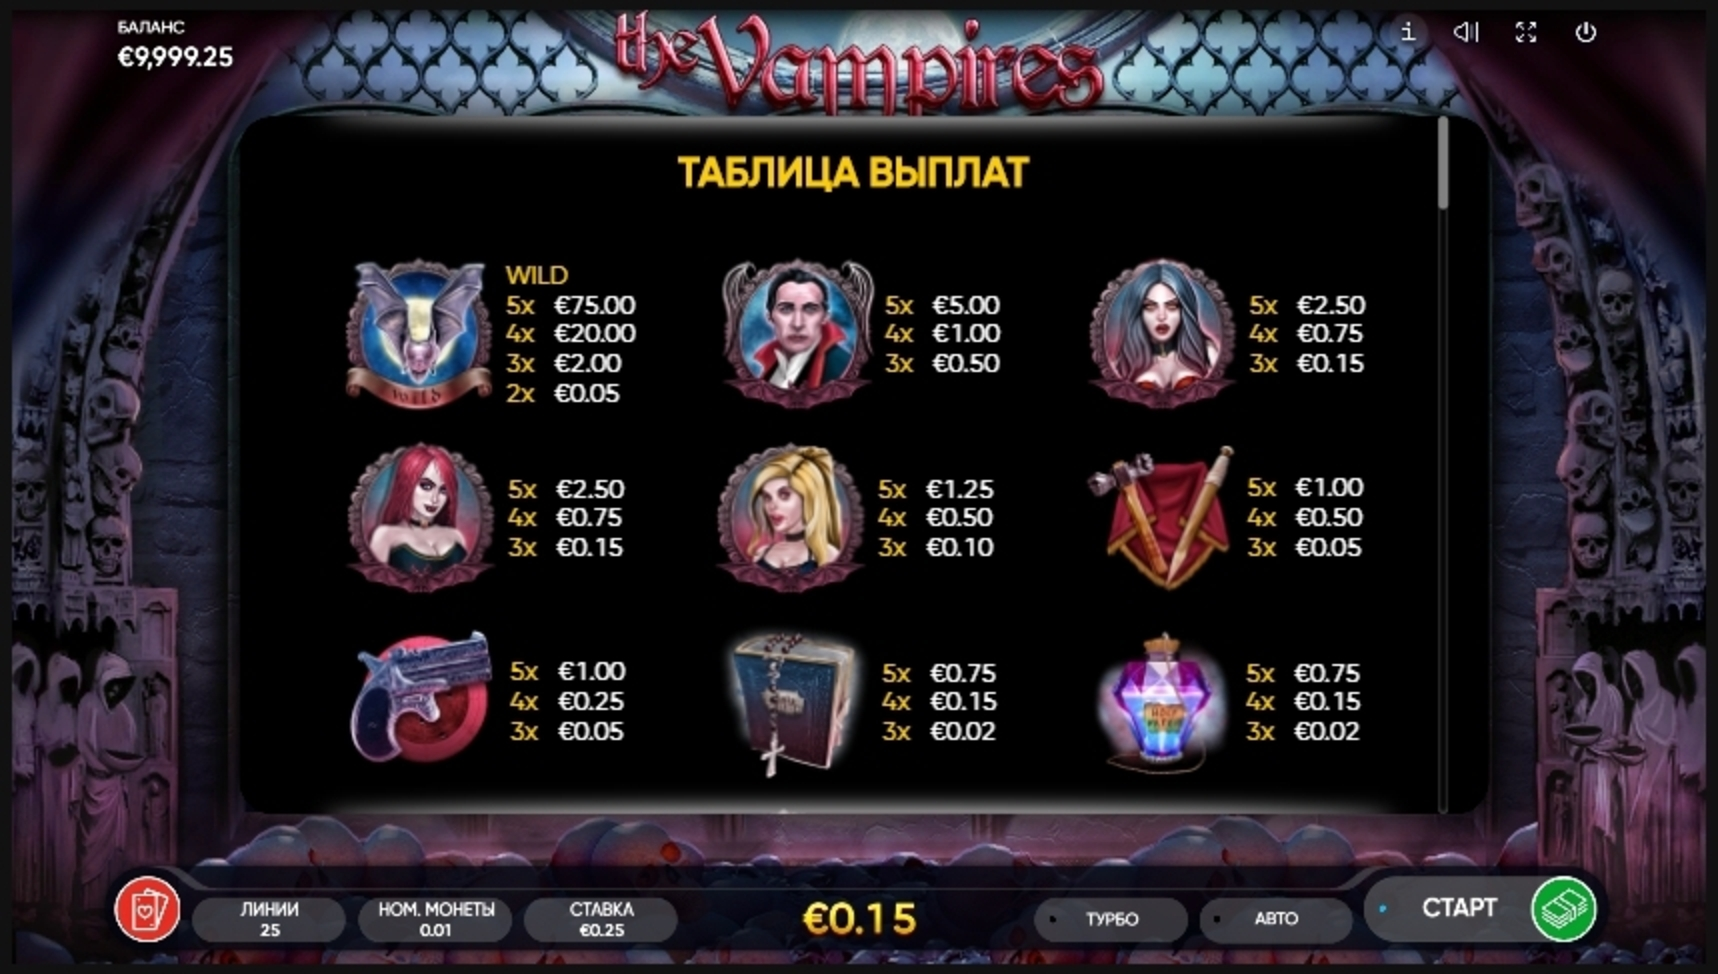 Info of The Vampires Slot Game by Endorphina